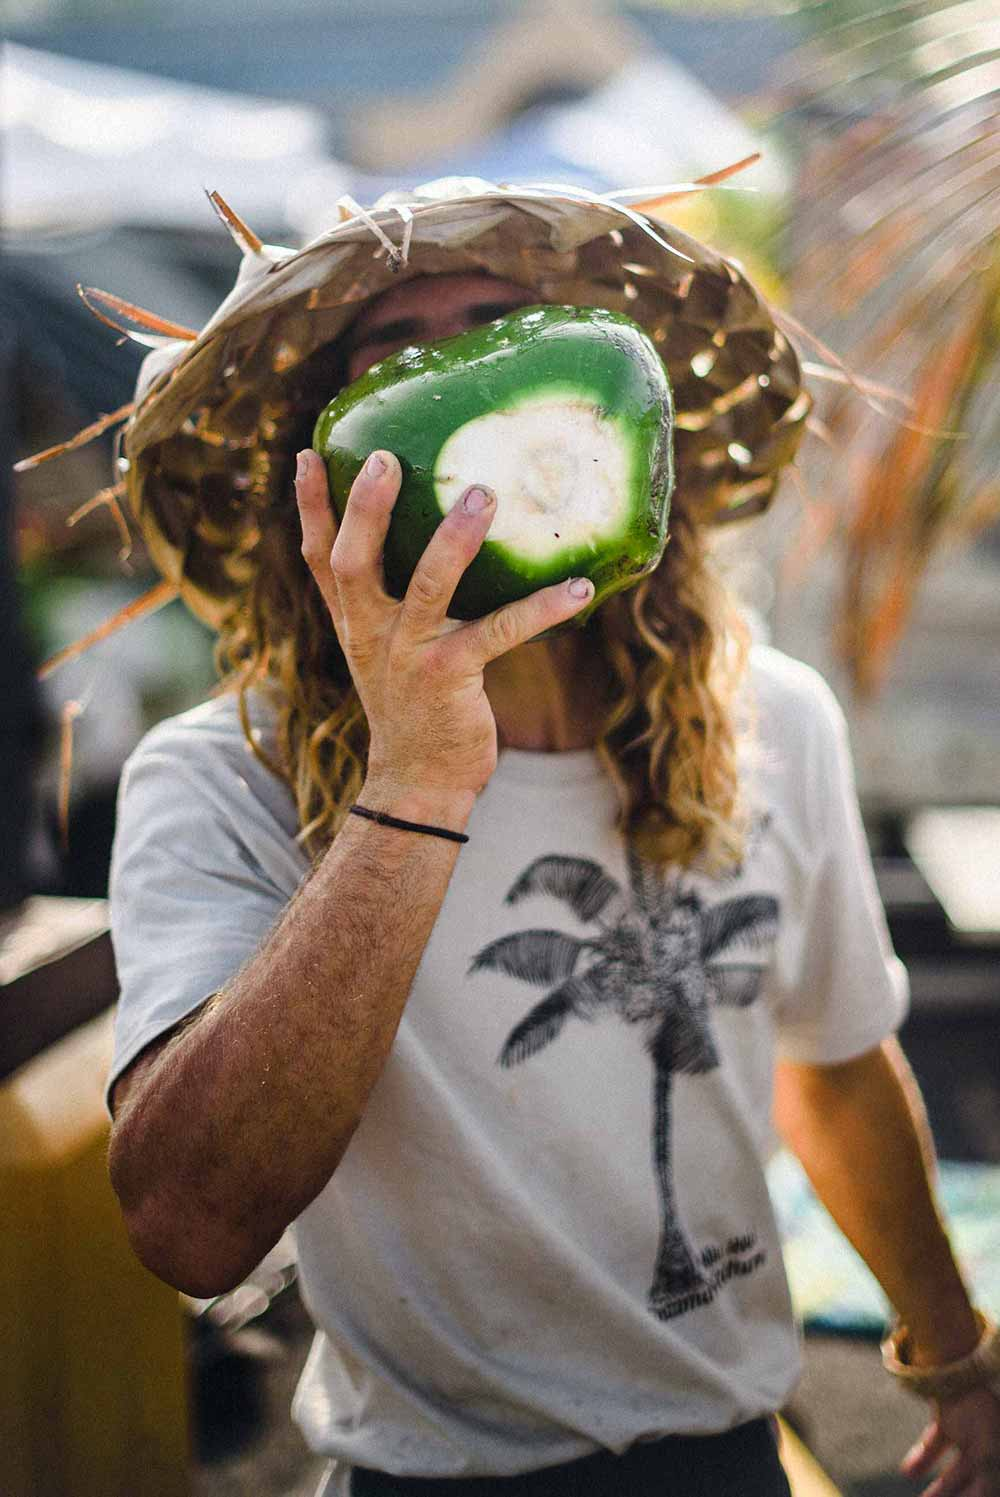 Keauhou-Farmers-Market-fresh-cut-coconut.jpg